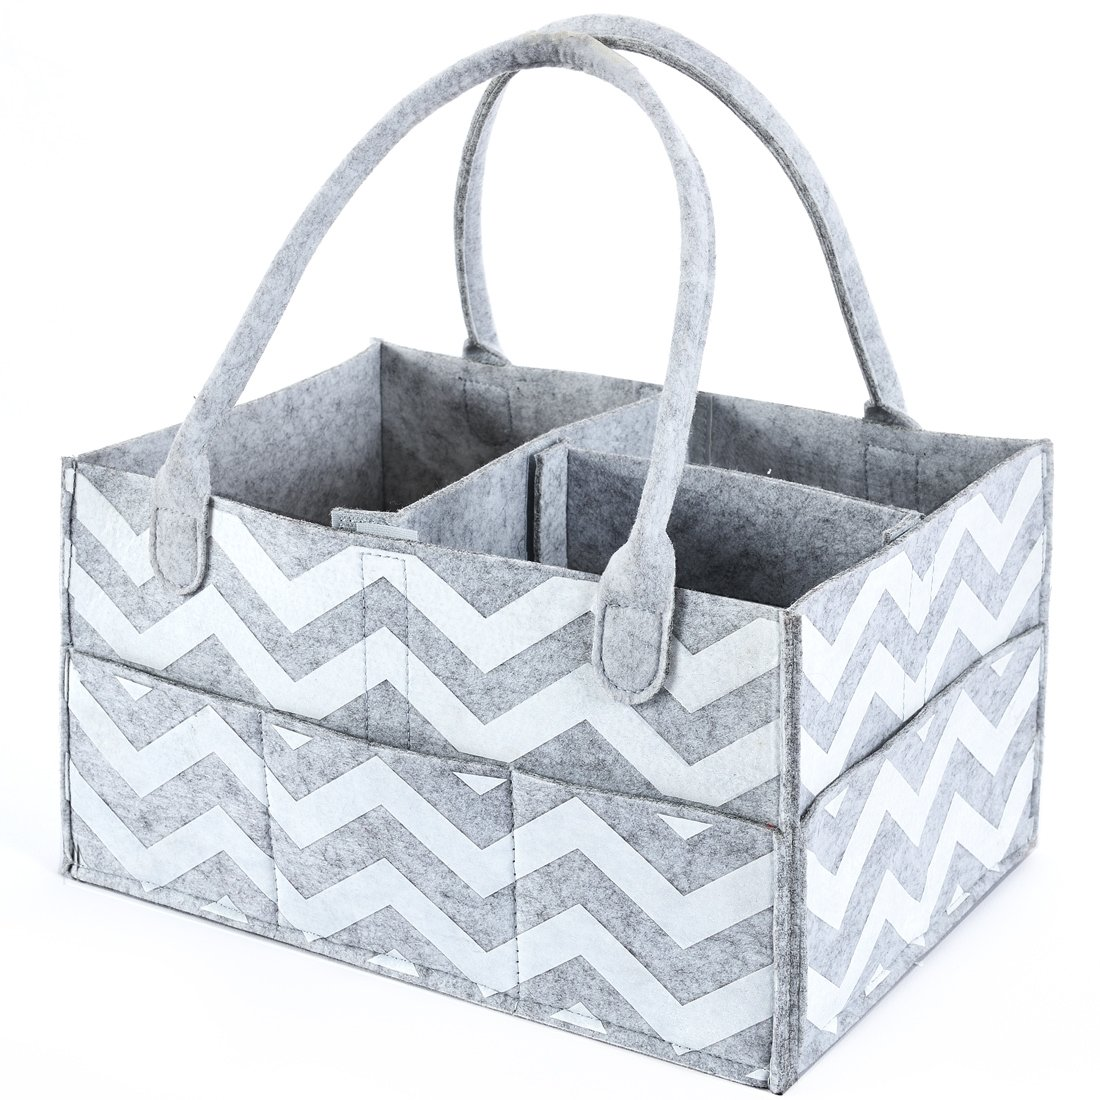 Baby Diaper Caddy Organizer by Brolex: Large Capacity Nursery Organizer for Boys Girls-Unisex Portable Travel Organizing Basket with Lightweight, Sturdy & Versatile Design,Grey/White Chevron by BROLEX